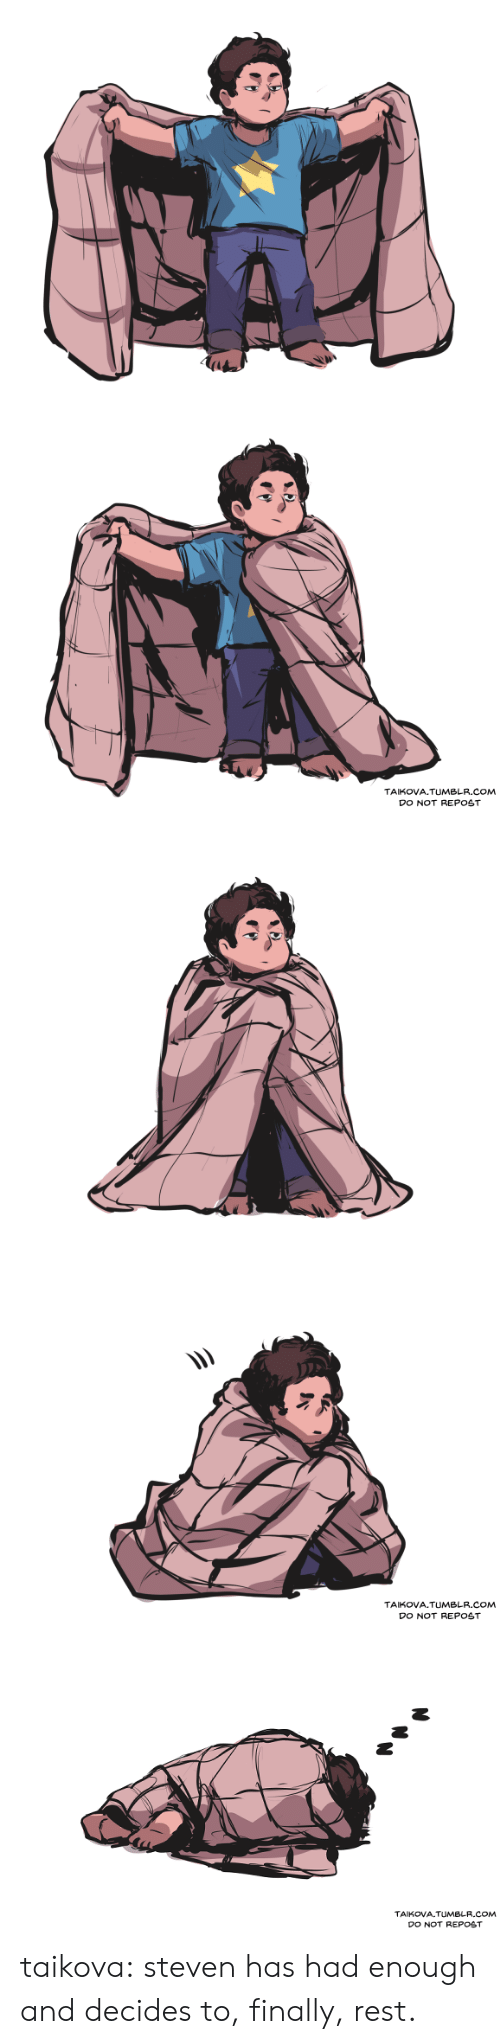 Target, Tumblr, and Blog: TAIKOVA.TUMBLR.COM  DO NOT REPOST   TAIKOVA.TUMBLR.COM  DO NOT REPOST   TAIKOVA.TUMBLR.COM  DO NOT REPOST taikova:  steven has had enough and decides to, finally, rest.